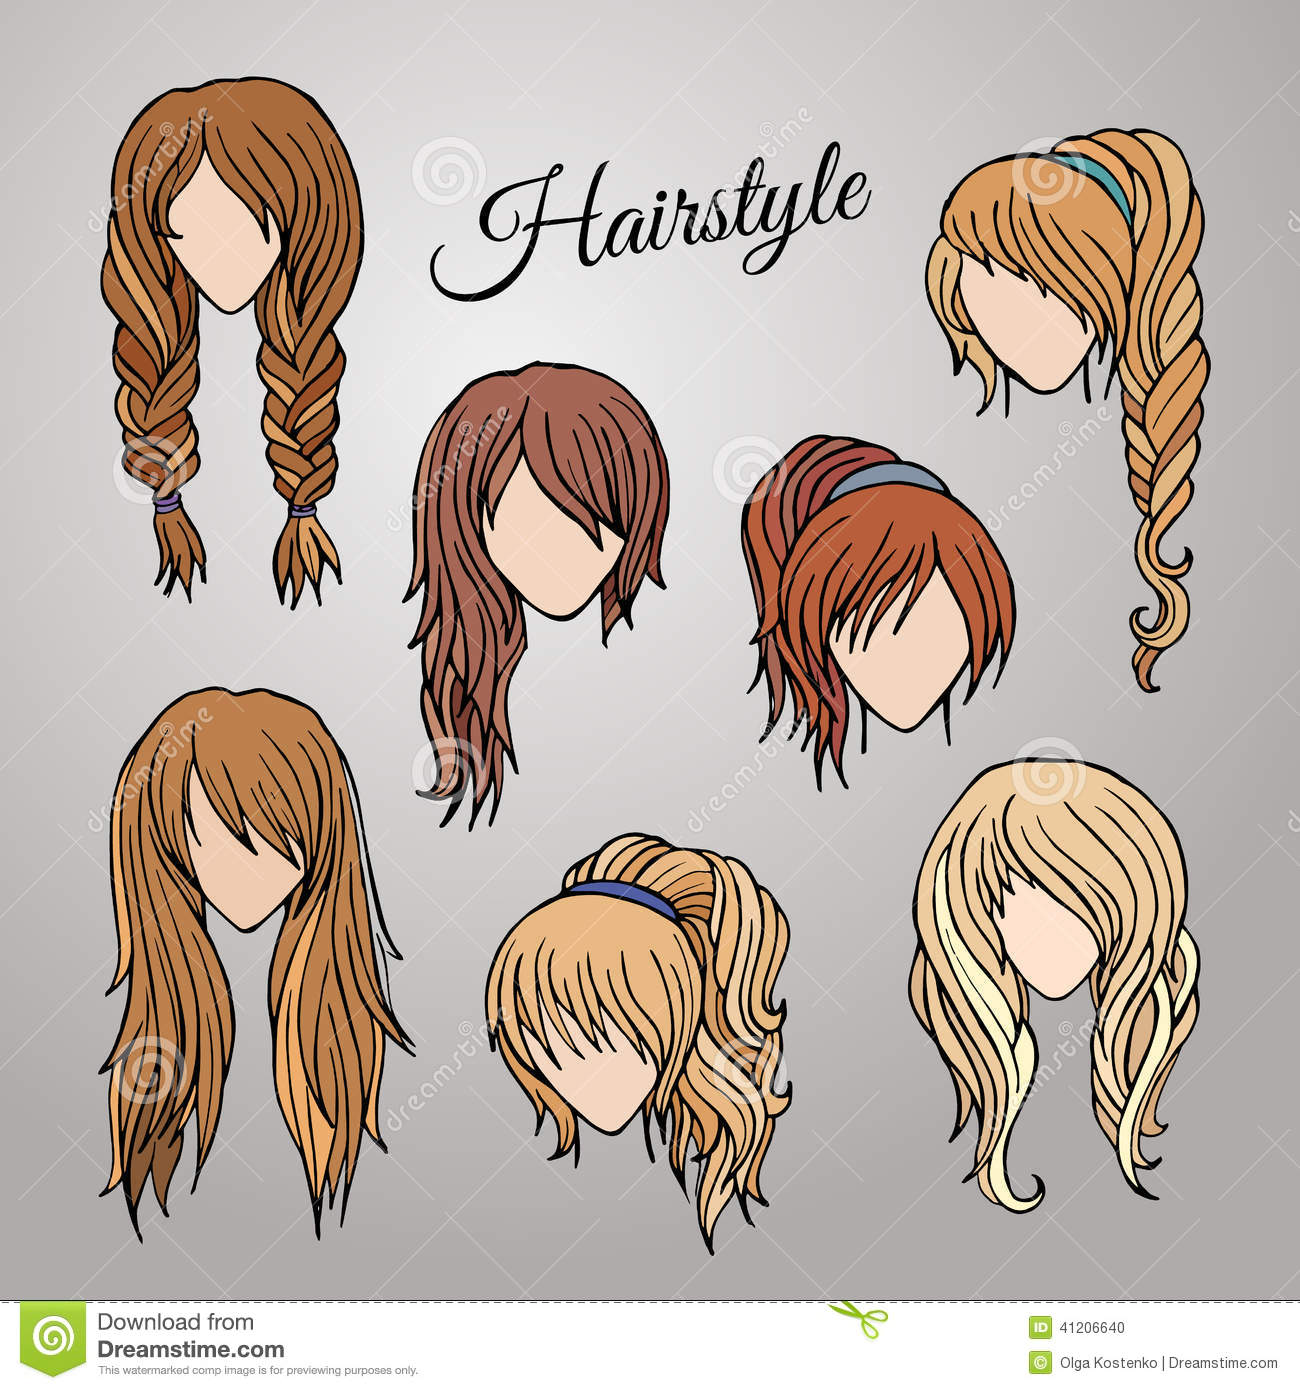 Different Cartoon Hairstyles Stock Vector - Image: 41206640